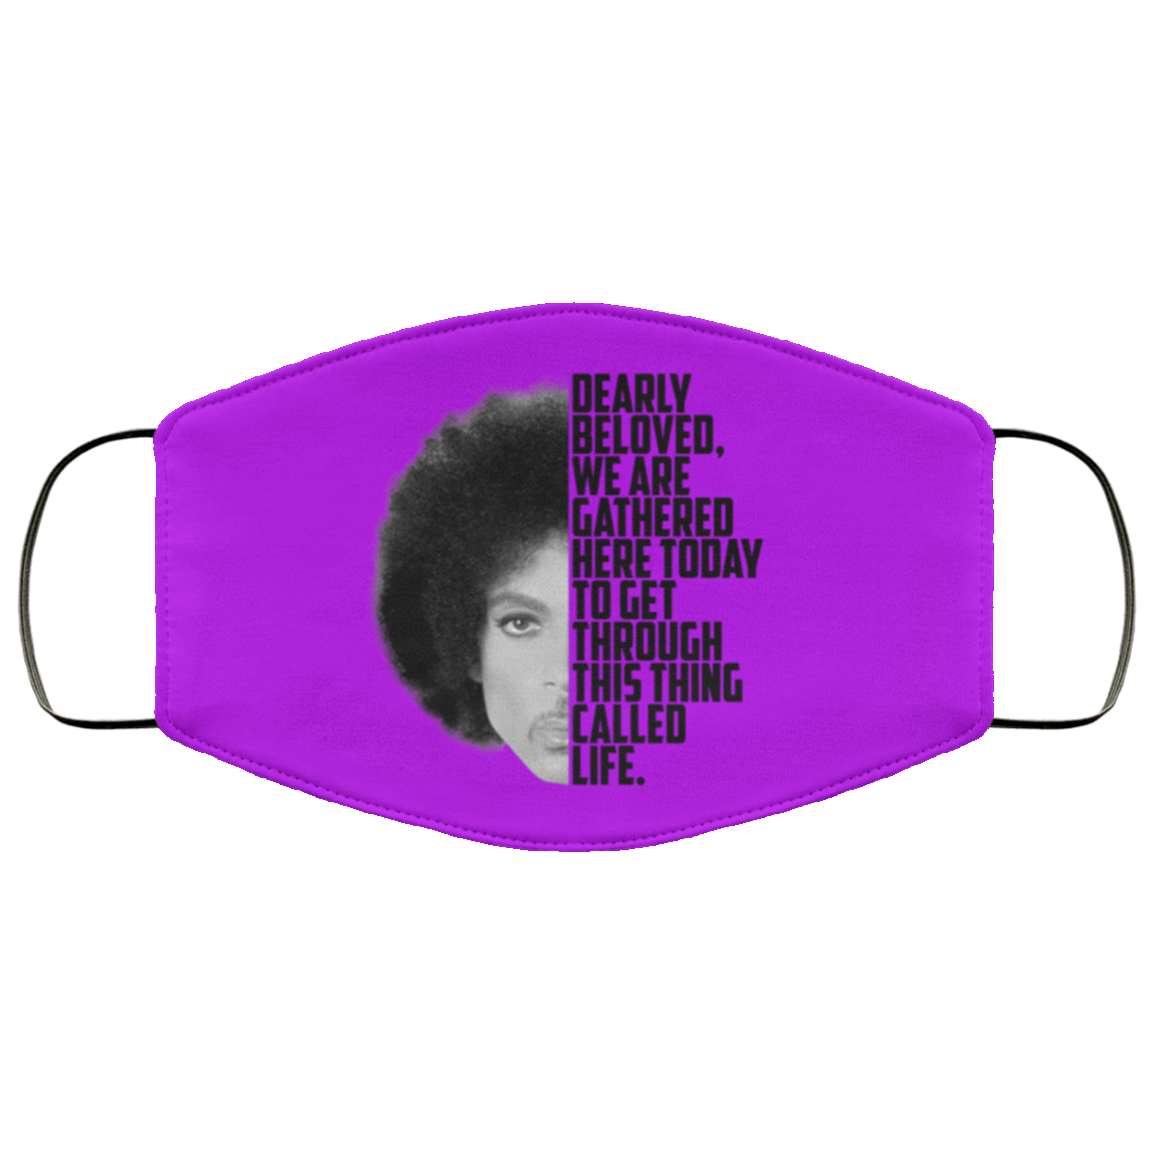 Prince Rogers Dearly beloved purple Face Mask